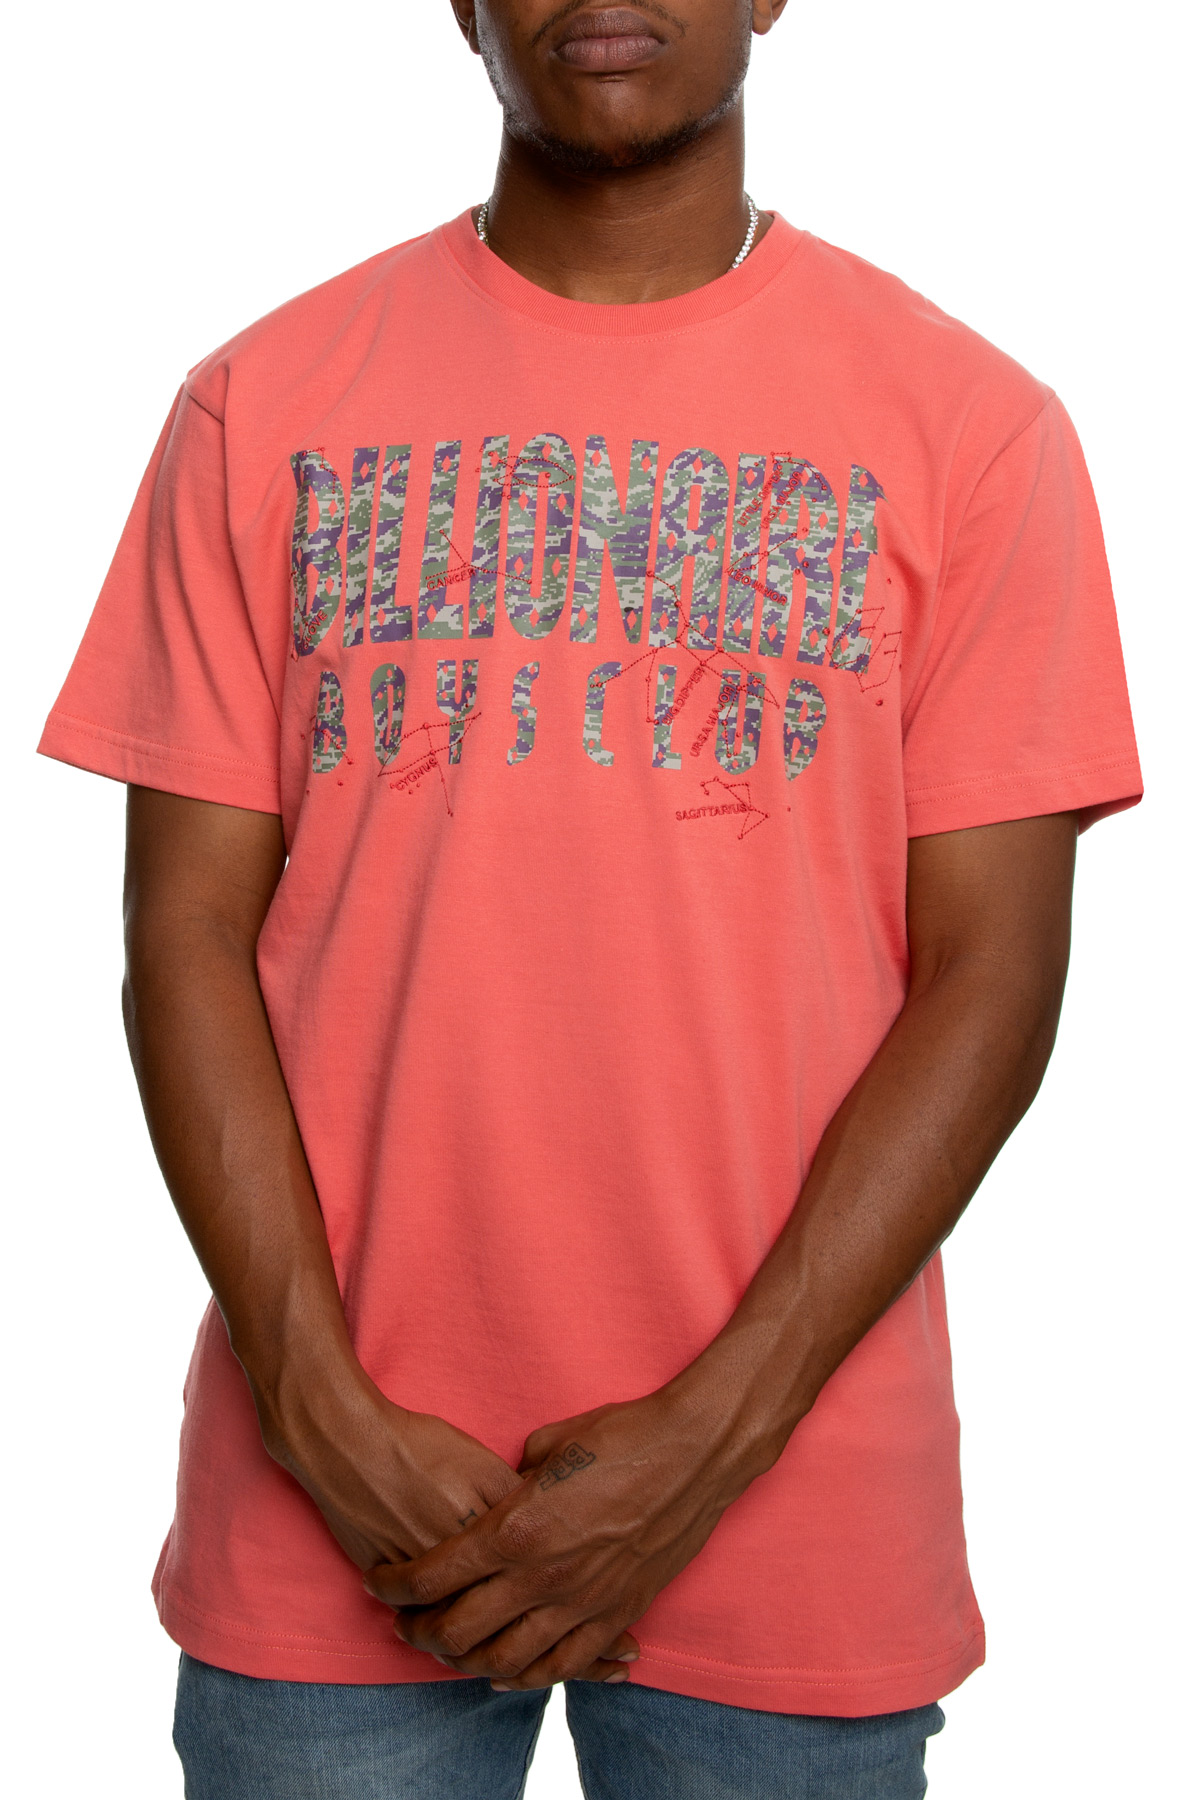 constellations short sleeve tee in rose of sharon